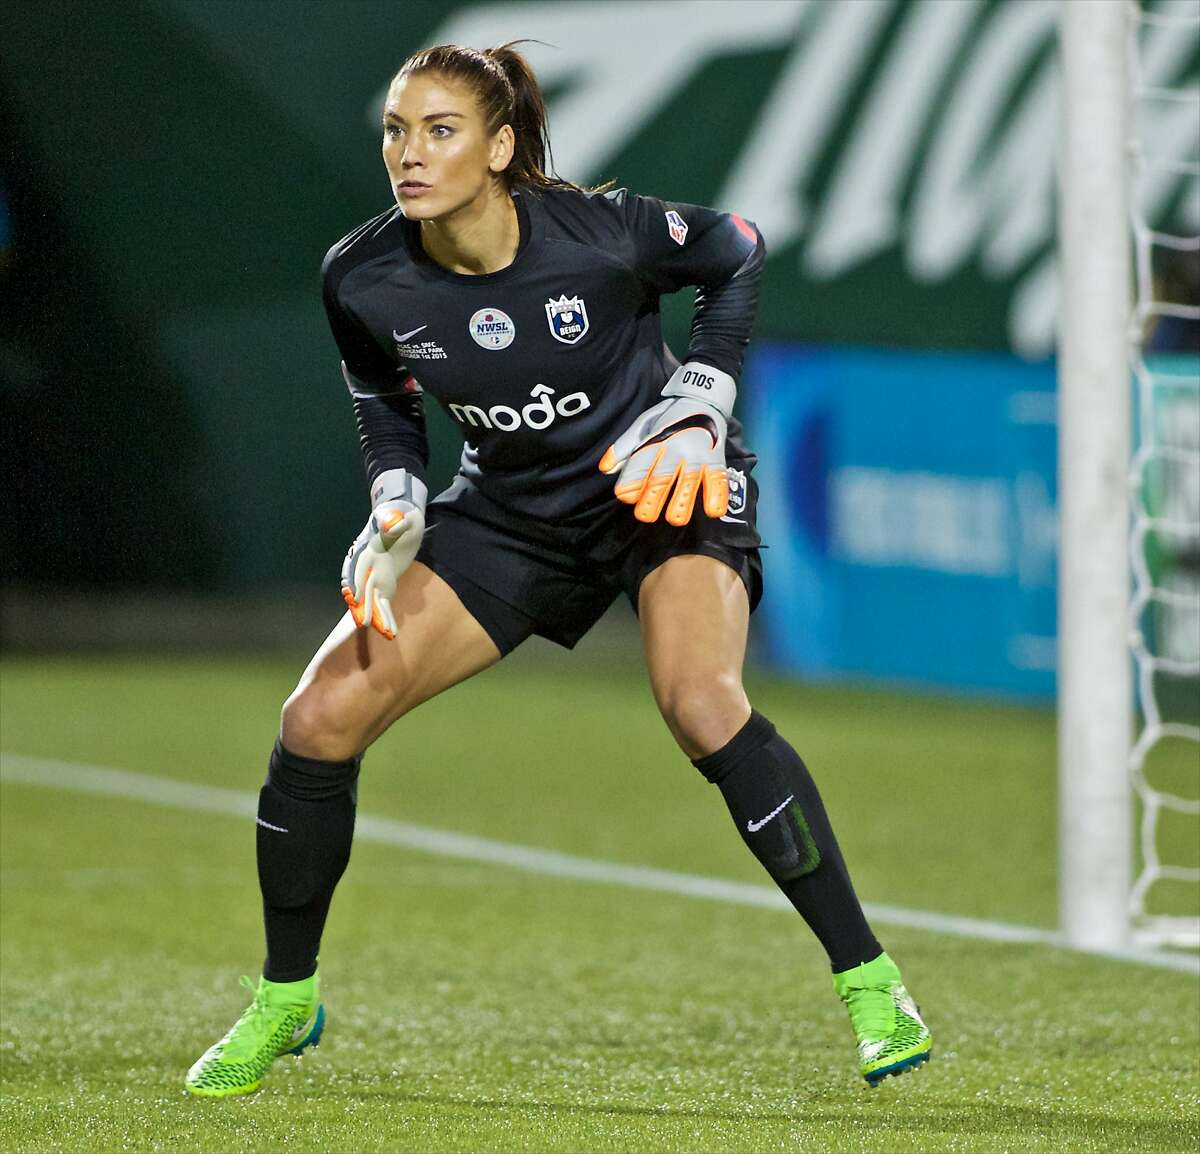 FILE - In this Oct. 1, 2015, file photo, Seattle Reign FC goalkeeper Hope Solo follows the action during the second half of the NWSL soccer championship match in Portland, Ore. New President Gianni Infantino has appointed a woman, Senegalese United Nations official Fatma Samoura as secretary general, and additionally announced the creation of a women�s soccer division at the recent FIFA Congress in Mexico City. �It's a great step forward, but it's been decades of a certain mindset,� U.S. goalkeeper Hope Solo said. (AP Photo/Craig Mitchelldyer, File)